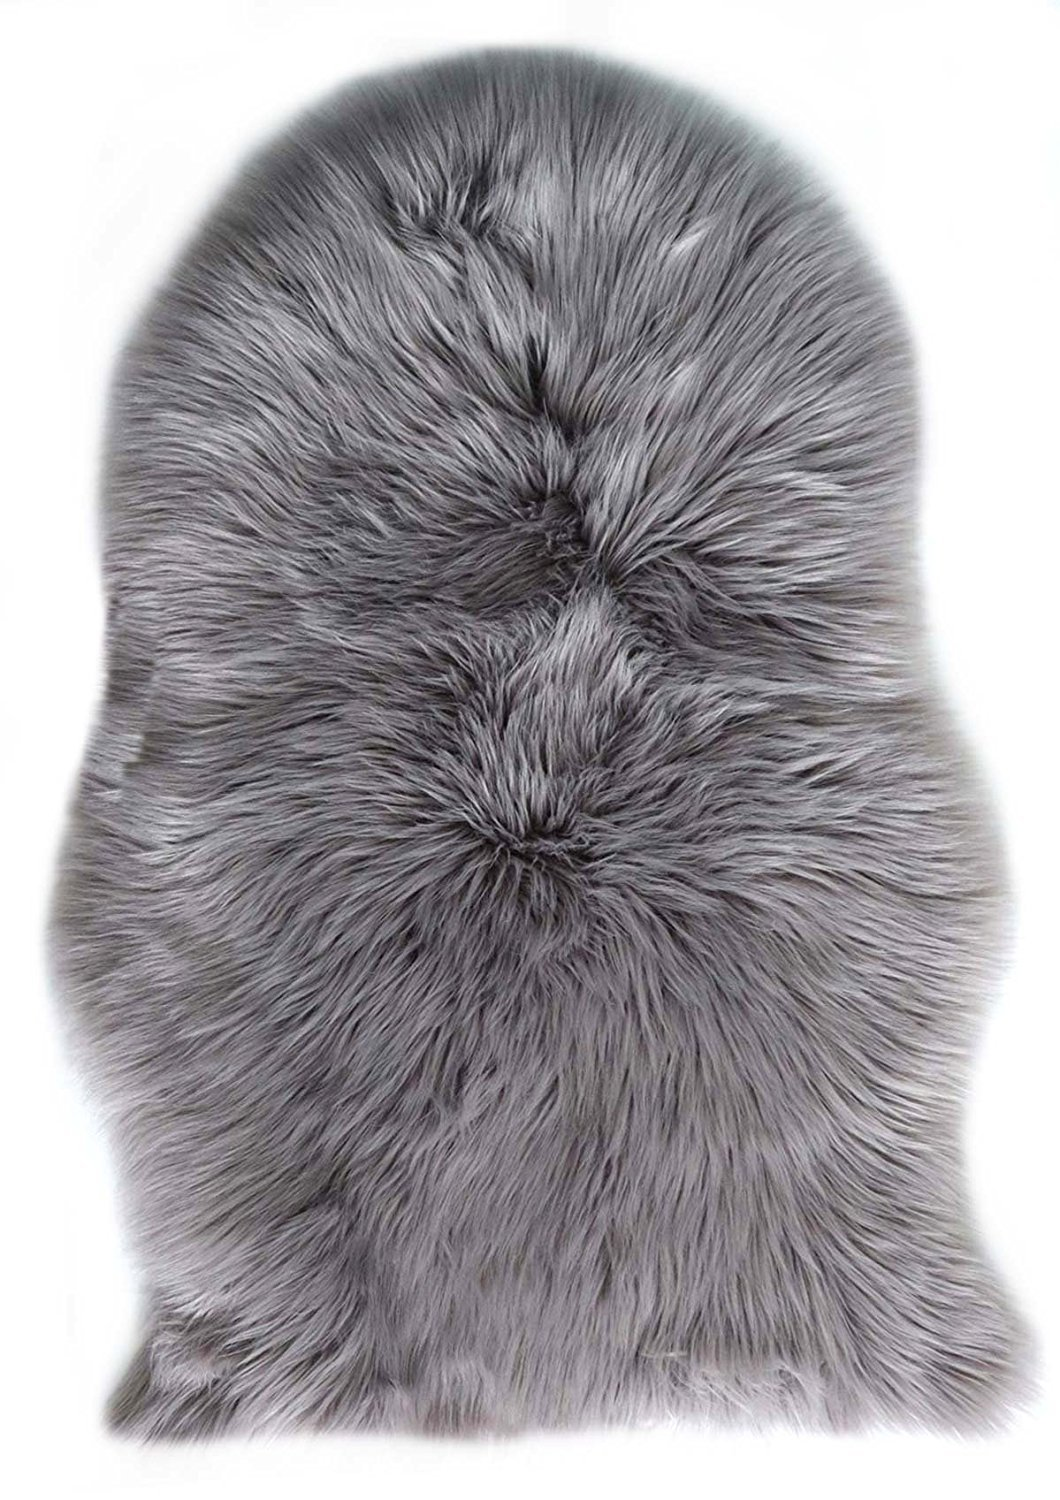 Faux Lambskin Fleece Rug 60 x 90 cm Artificial Fur Long Hair Decorative Sofa Bedroom Rug, Polyester, grey, 60 x 90 cm Avnten